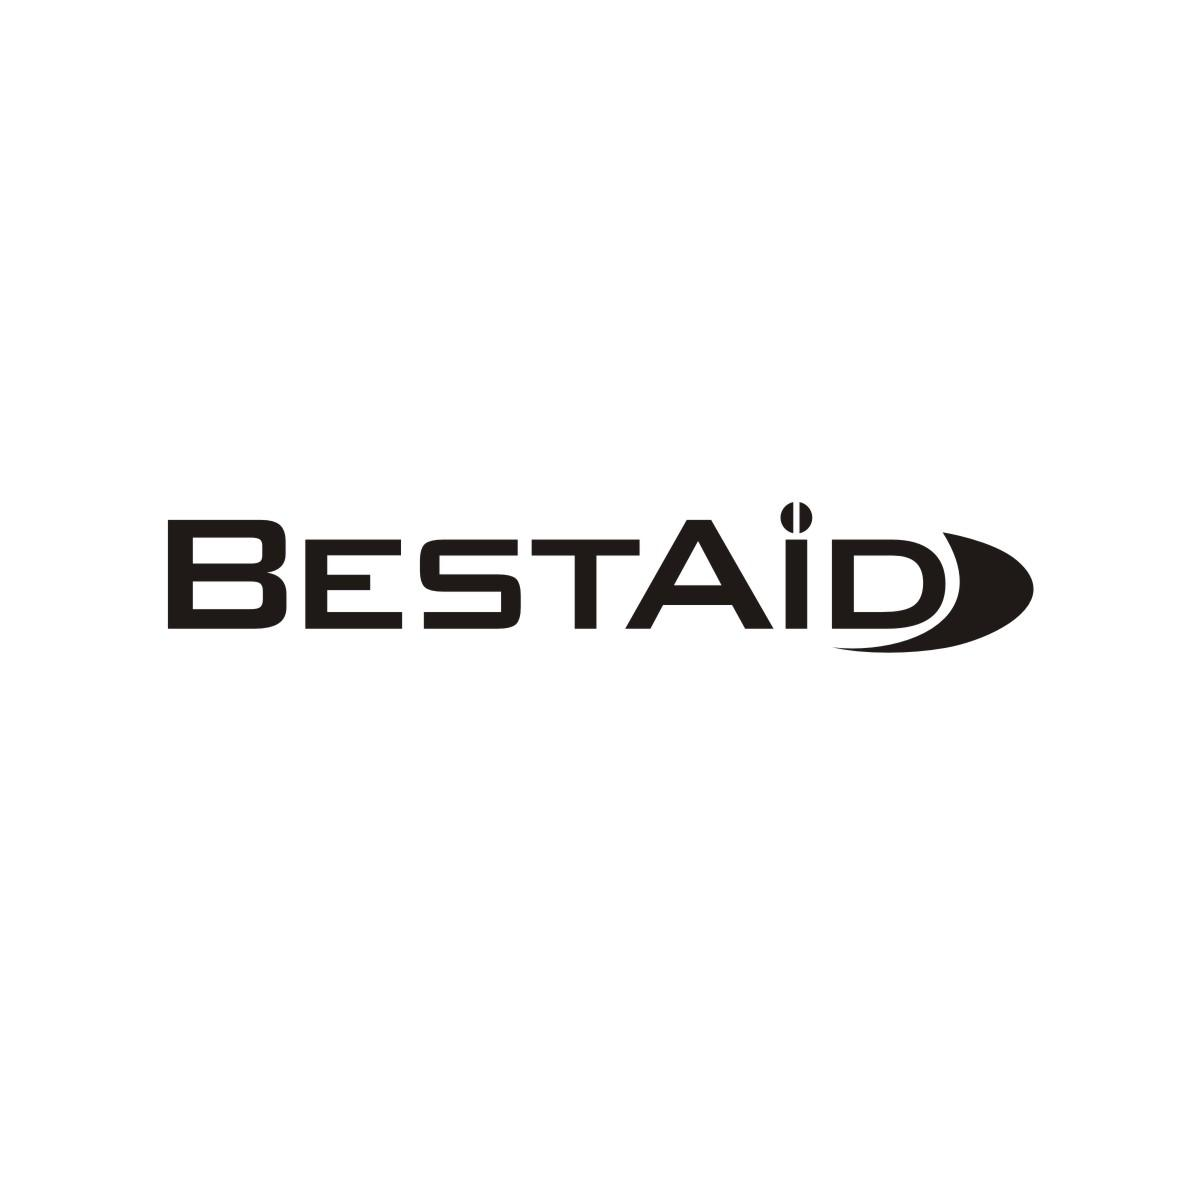 BESTAID